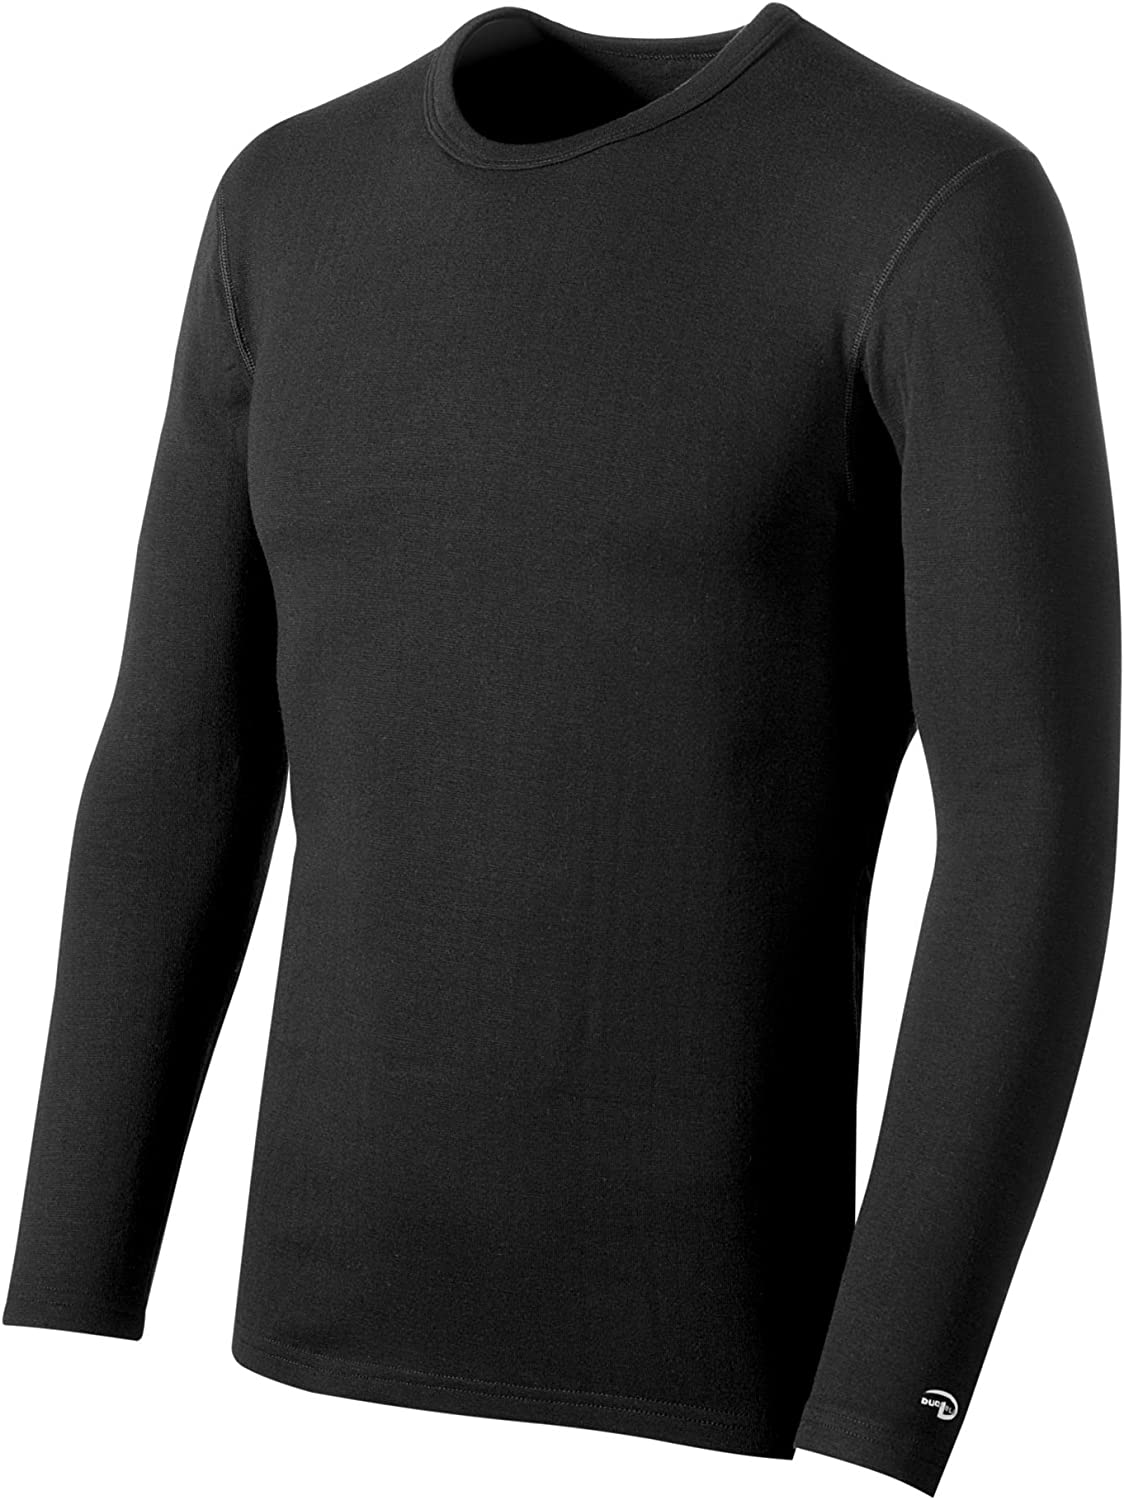 Duofold by Champion Varitherm Performance 2-Layer Men's Long-Sleeve Thermal Shirt Size - S